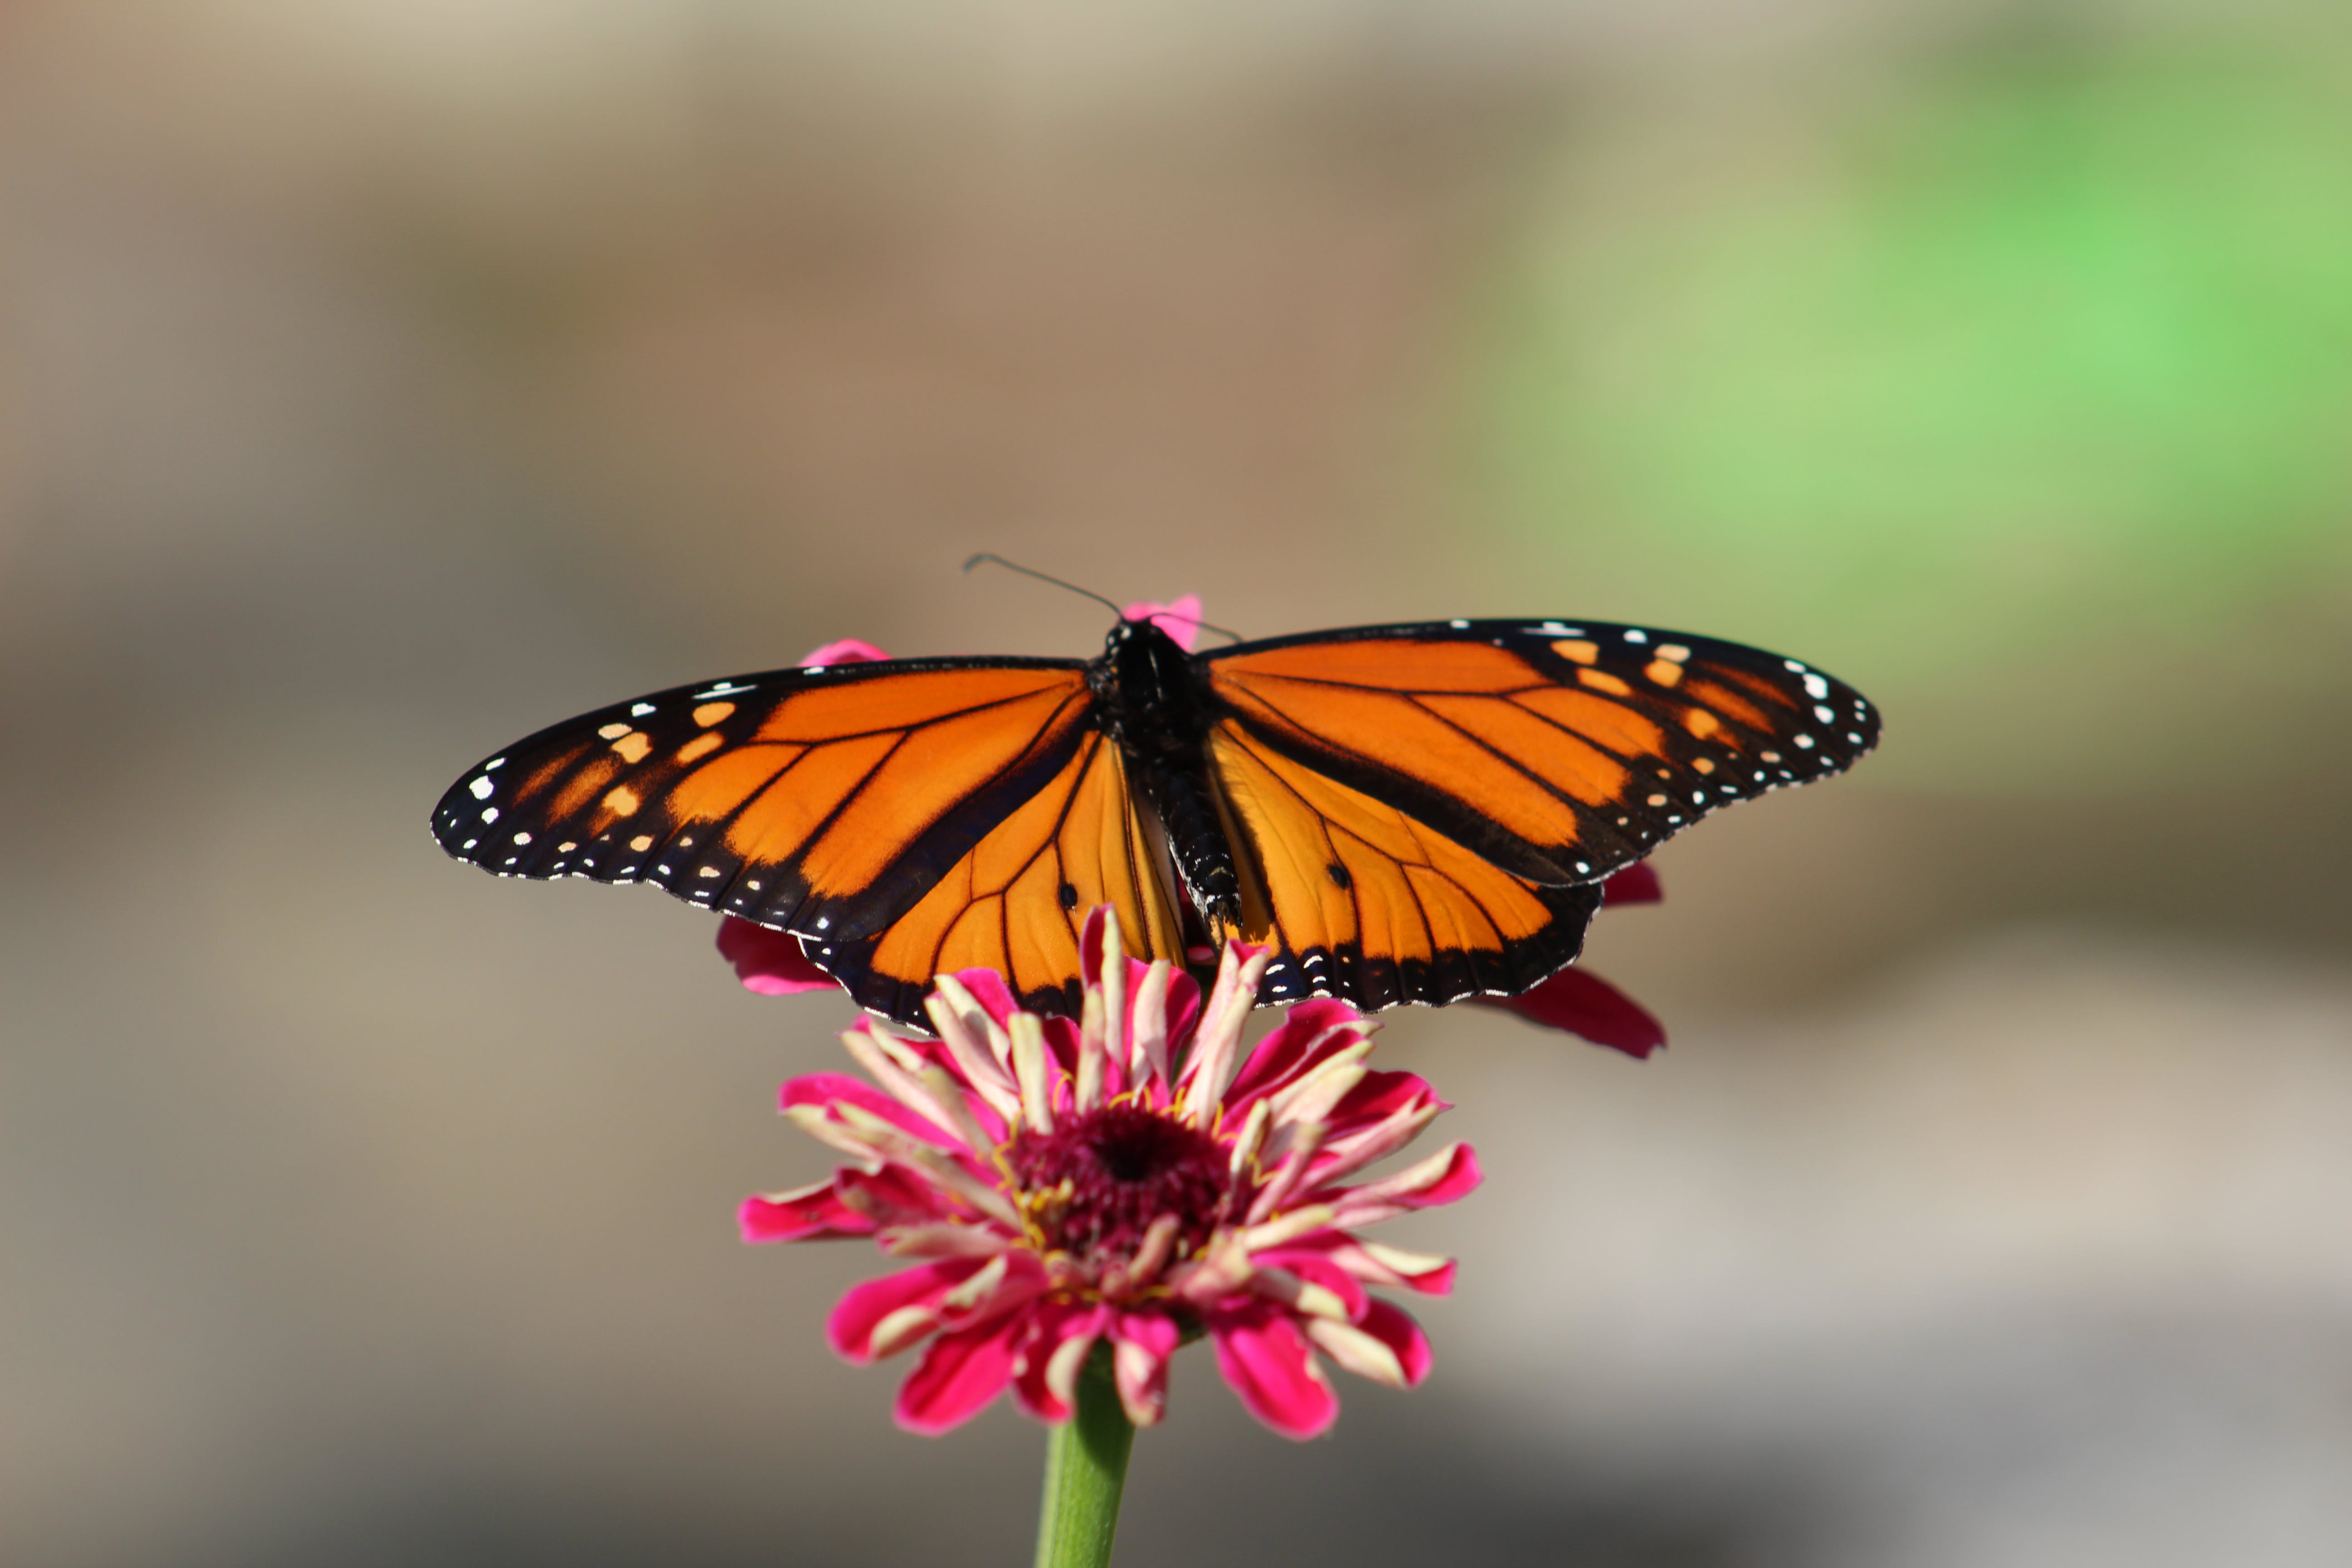 Free stock photo of butterflies, butterfly, insects, monarch butterfly